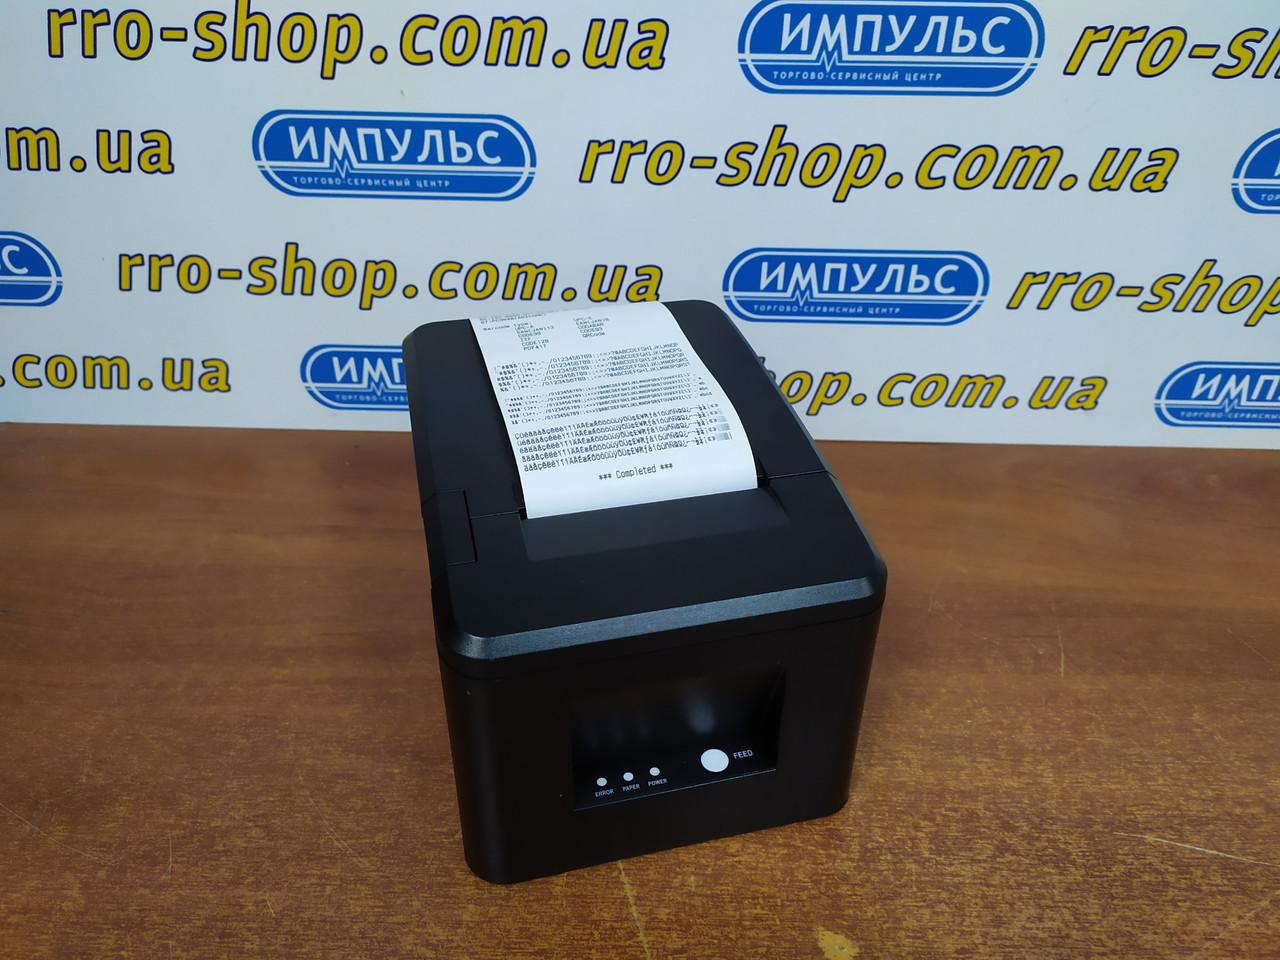 Принтер чеков HPRT POS80FE (USB, Ethernet, RS232, 80 мм, автообрезка чека)